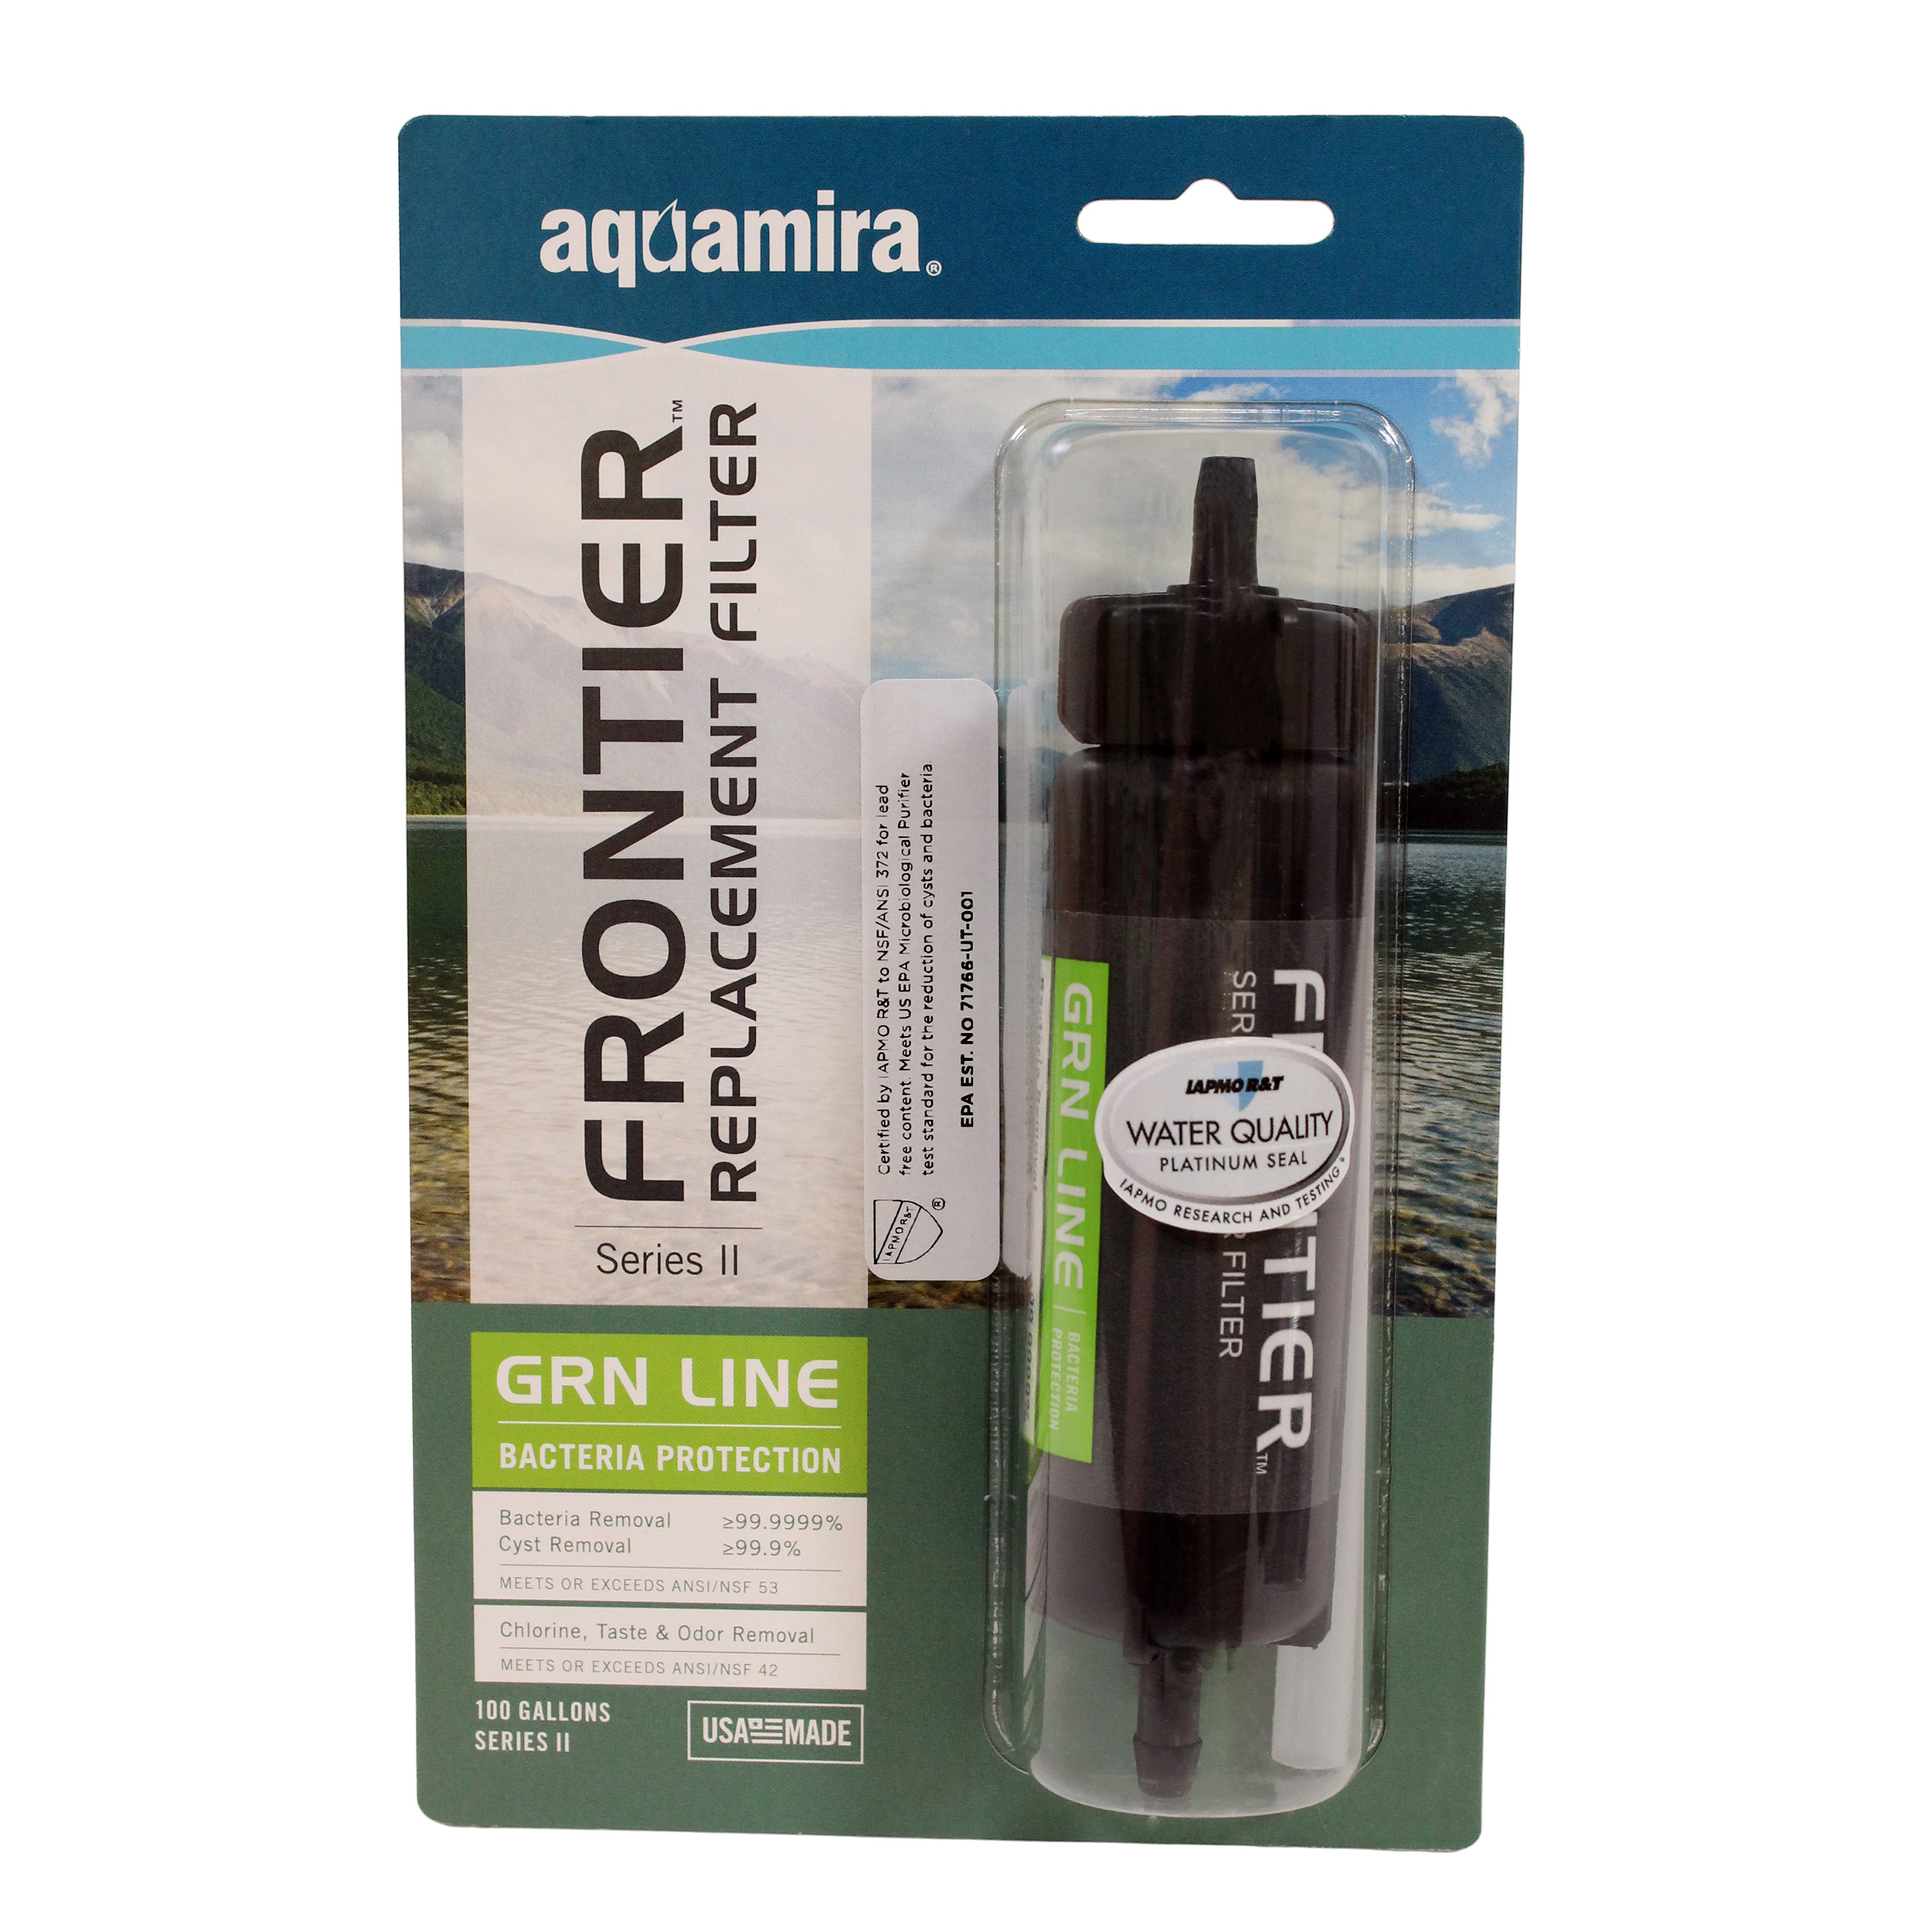 Aquamira Frontier Replacement Bottle Filter Grn II Series, 100 Gallons (378L) and Up To 800ml Per Minute by Aquamira